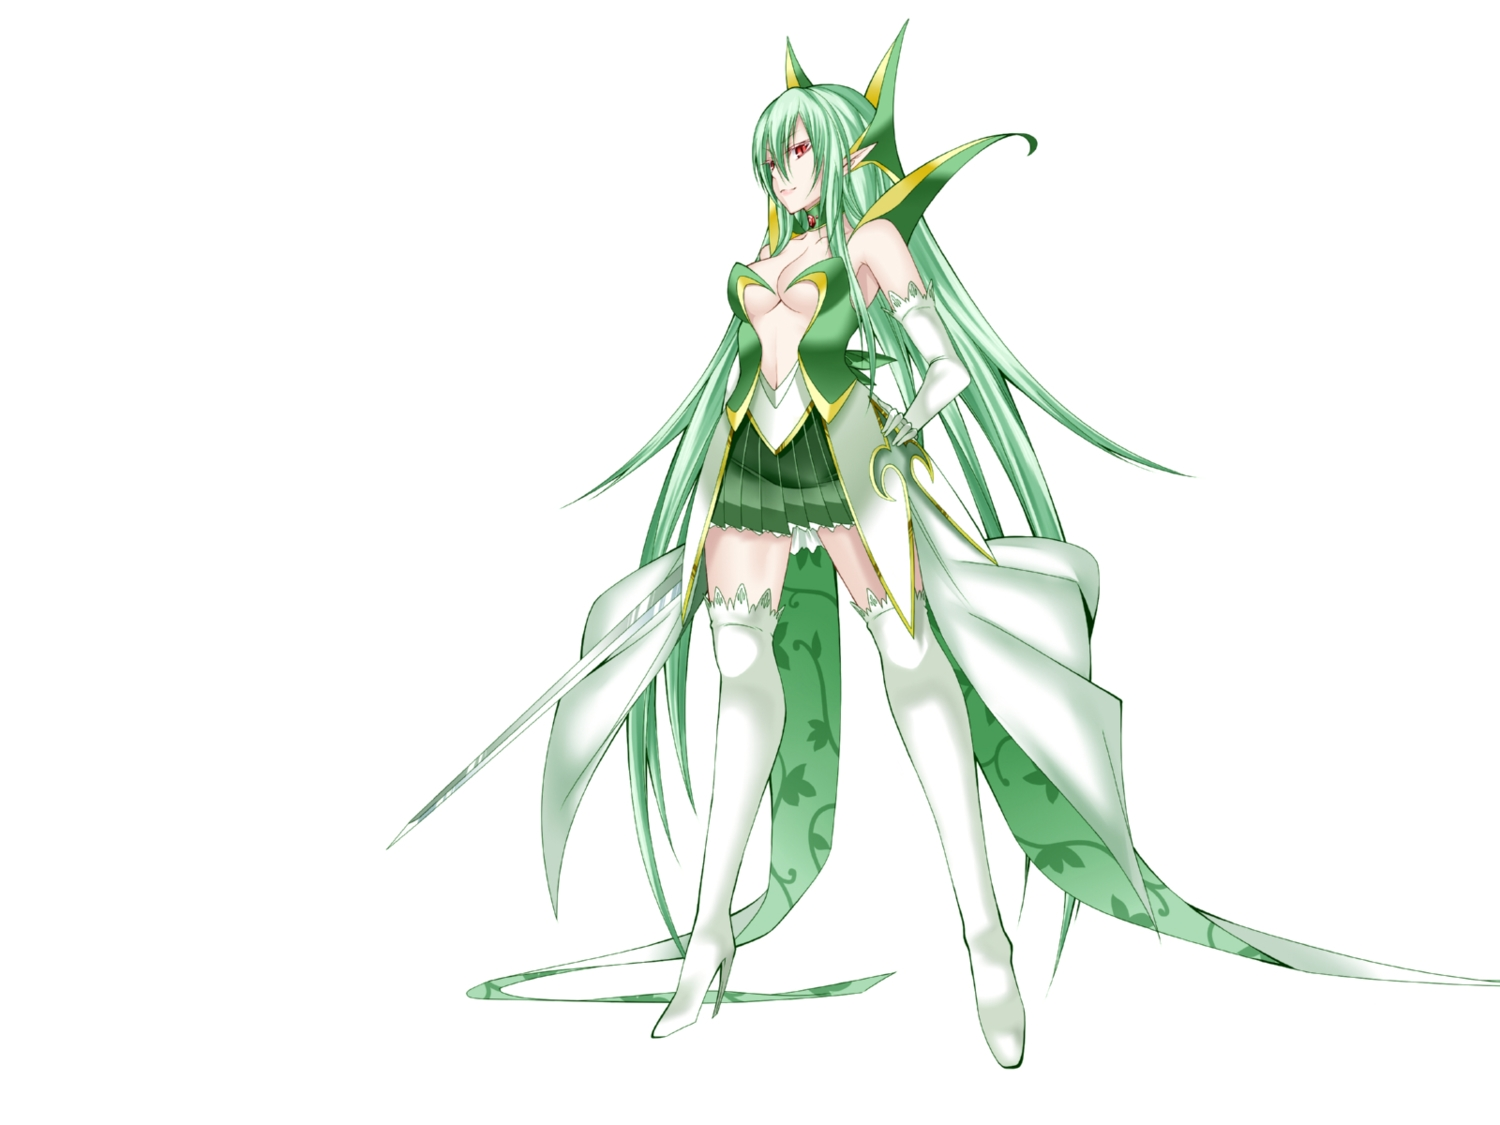 anthropomorphism boots breasts cleavage daive elbow_gloves gloves green_hair long_hair pointed_ears pokemon red_eyes serperior skirt sword thighhighs weapon white zettai_ryouiki